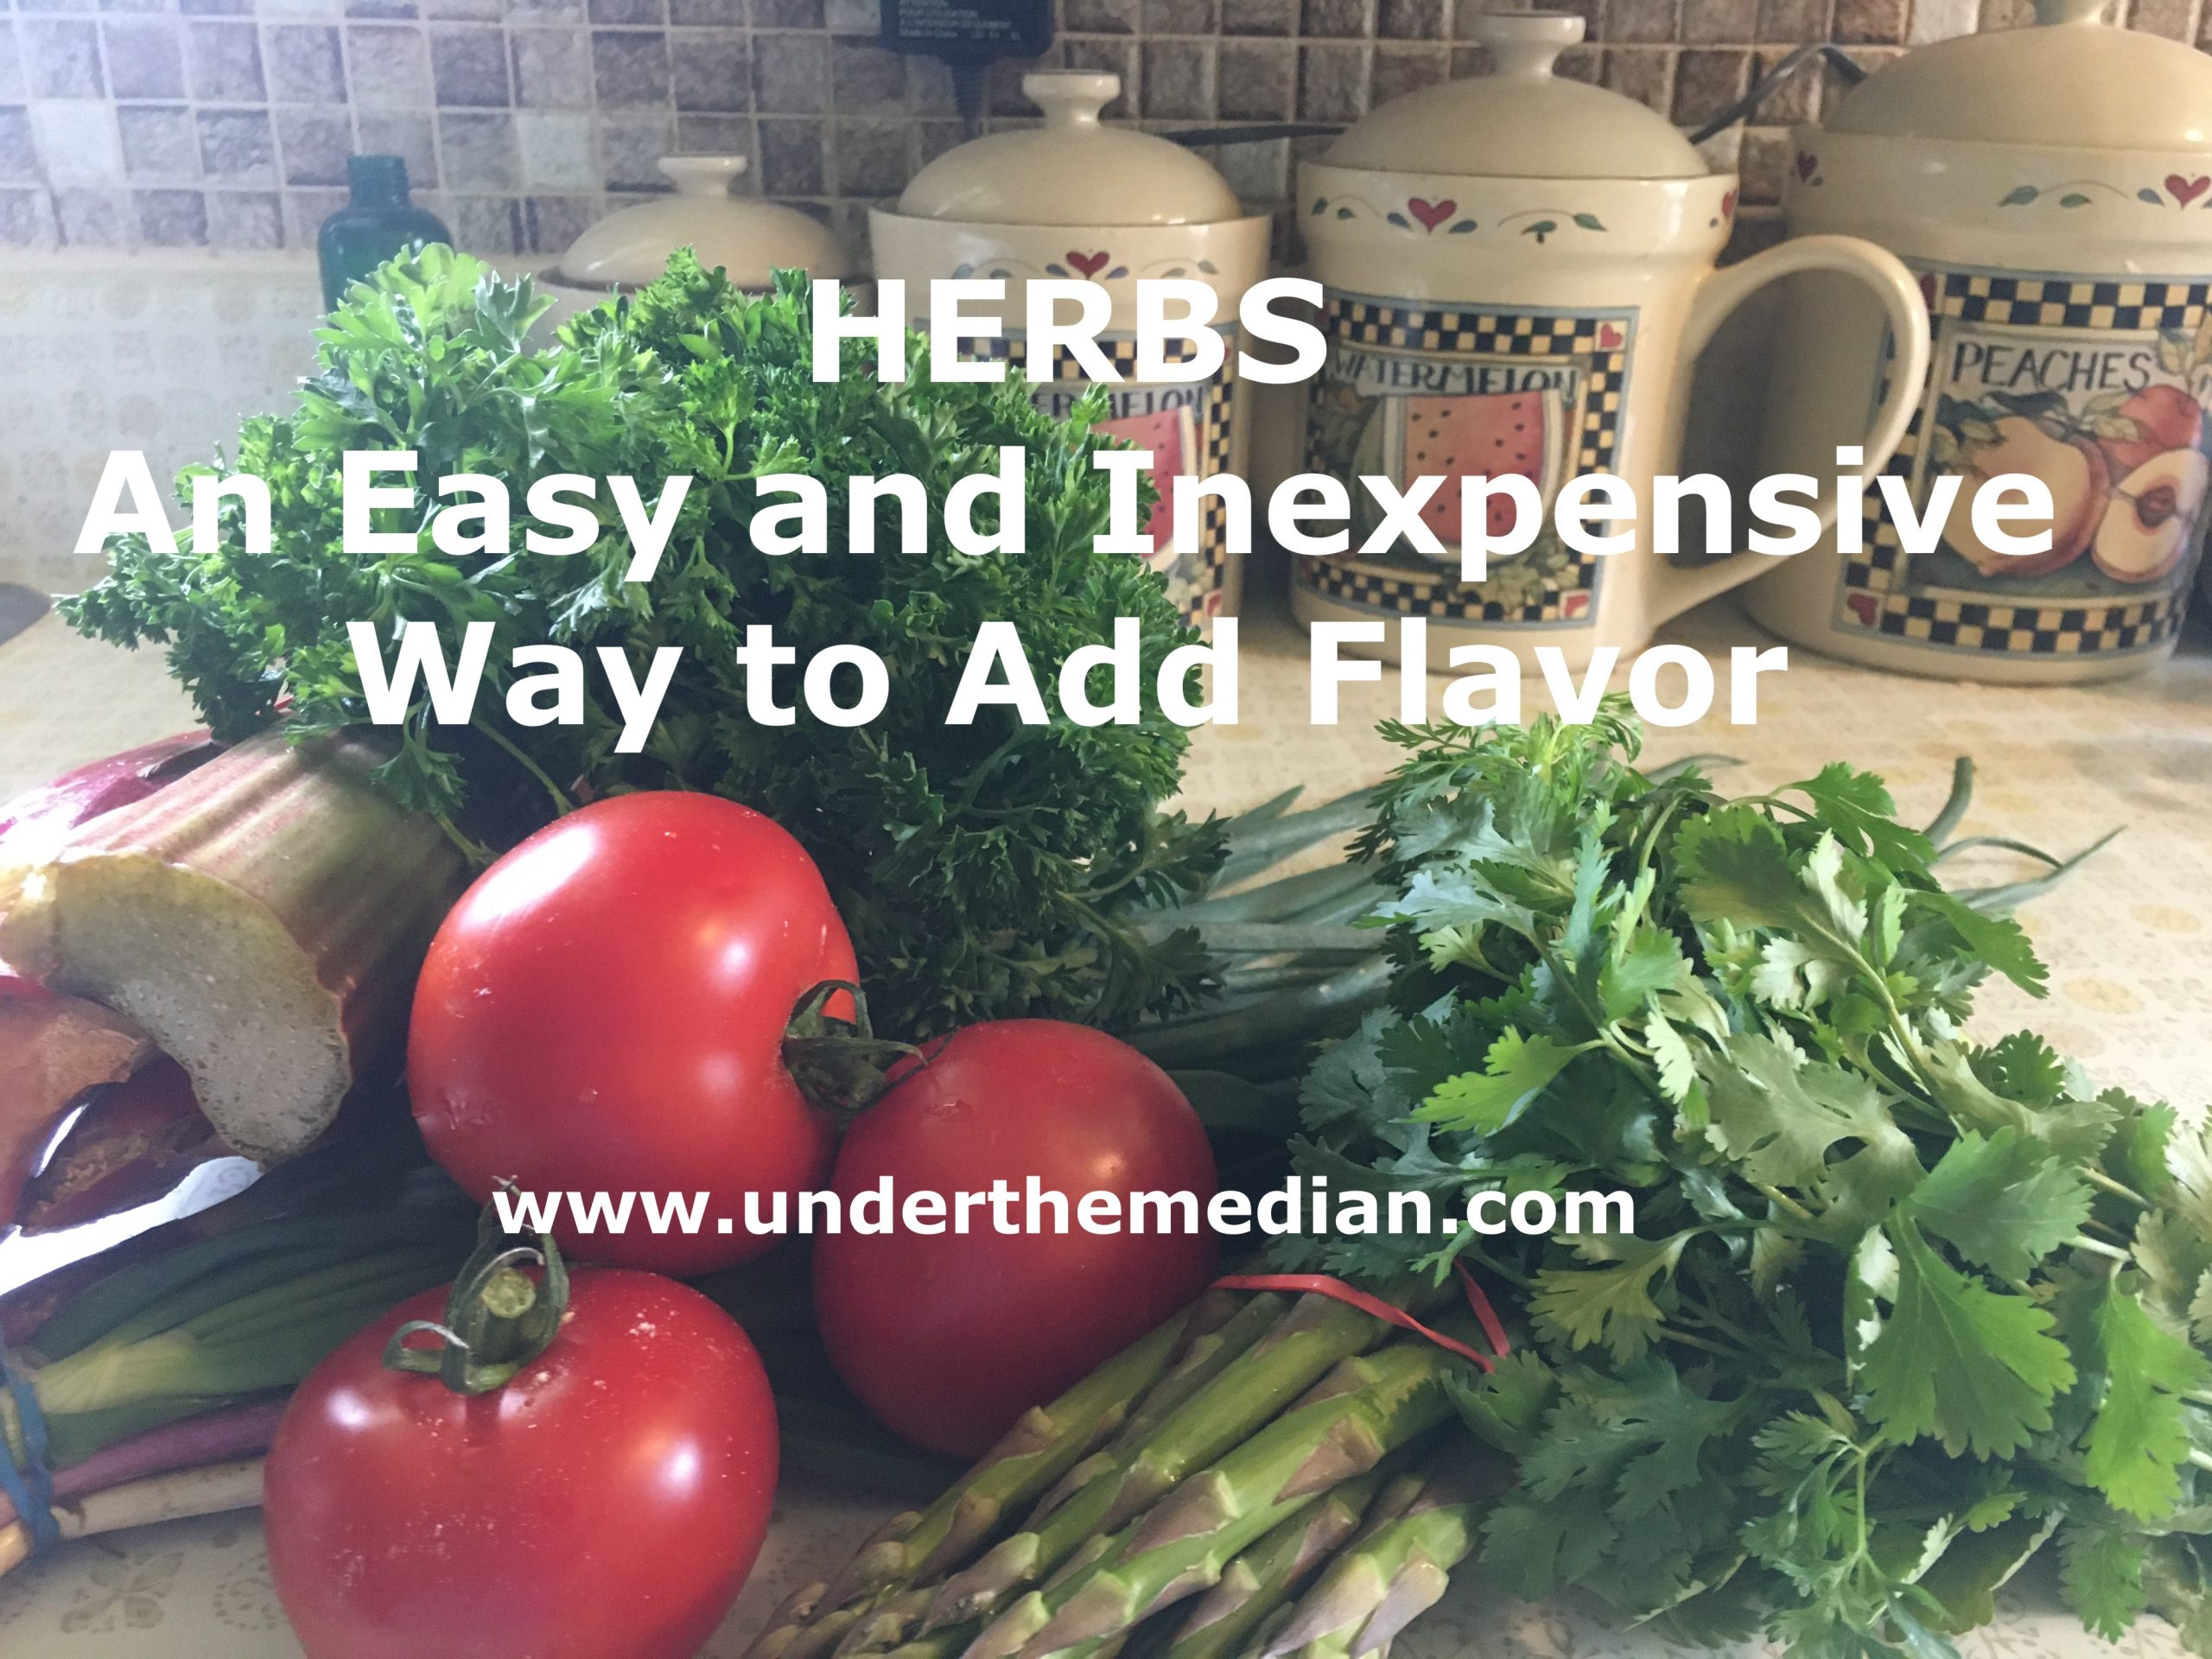 Herbs: An Easy and Inexpensive Way to Add Flavor